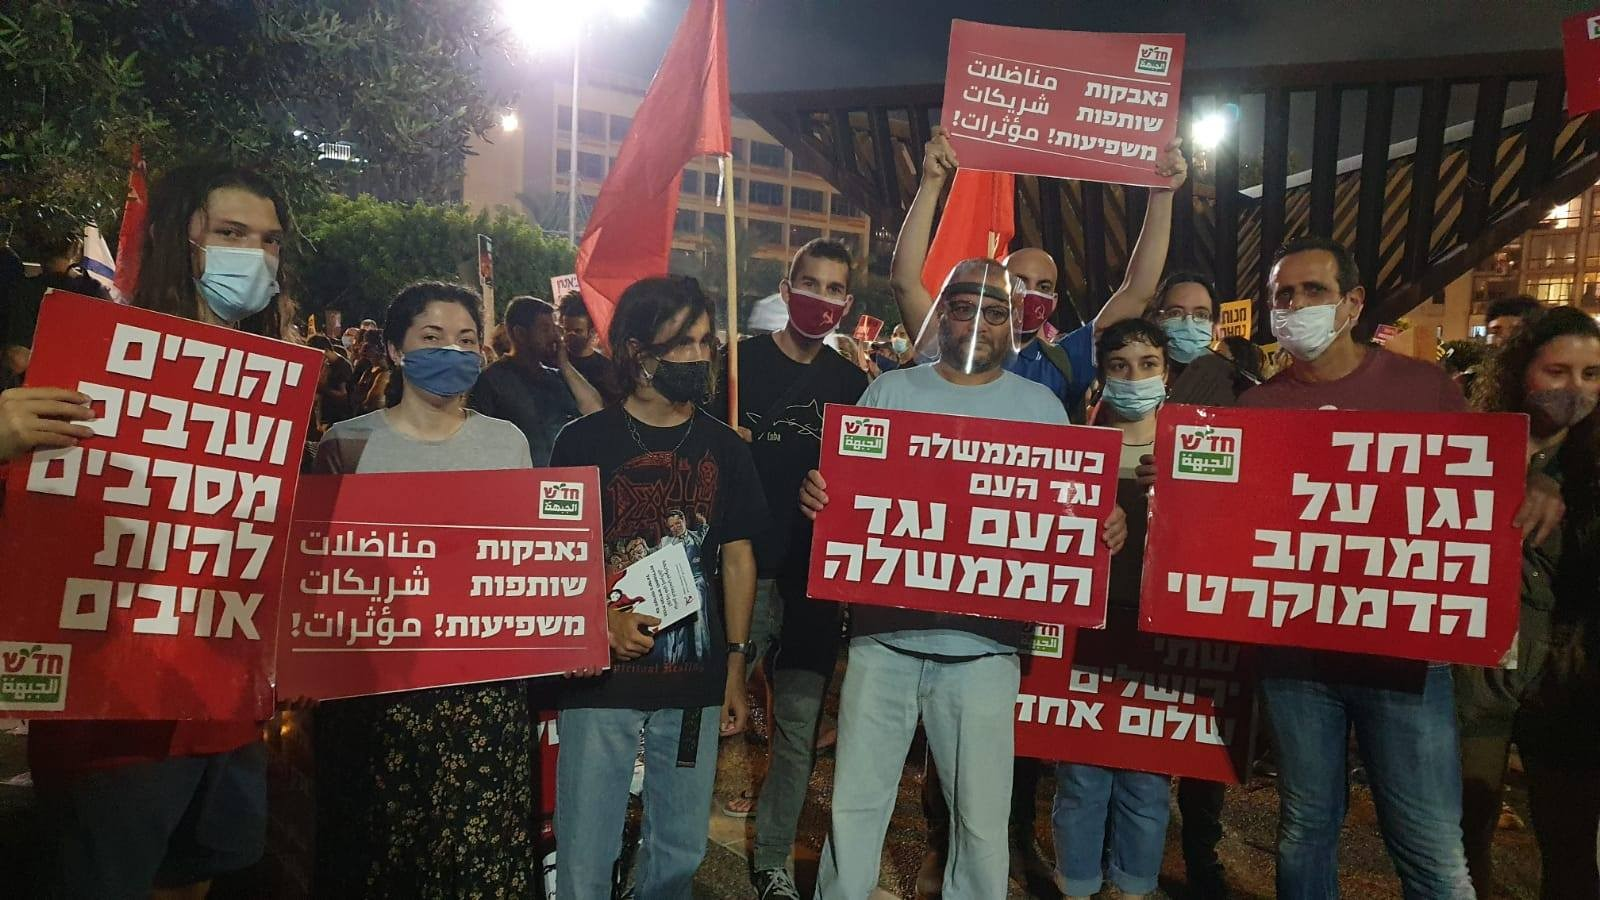 "Activists and supporters of Hadash, among them MK Ofer Cassif (fourth from left), demonstrate against the neoliberal handling of the coronavirus economic crisis by Israel's far-right government, Saturday night, July 11, at Rabin Square in Central Tel Aviv. From right to left the Hadash placards read"" ""Together we'll defend the democratic space""; ""When the government is against the people, the people are against the government""; ""Struggling, Participating and Influencing""; ""Jews and Arabs refuse to be enemies."""